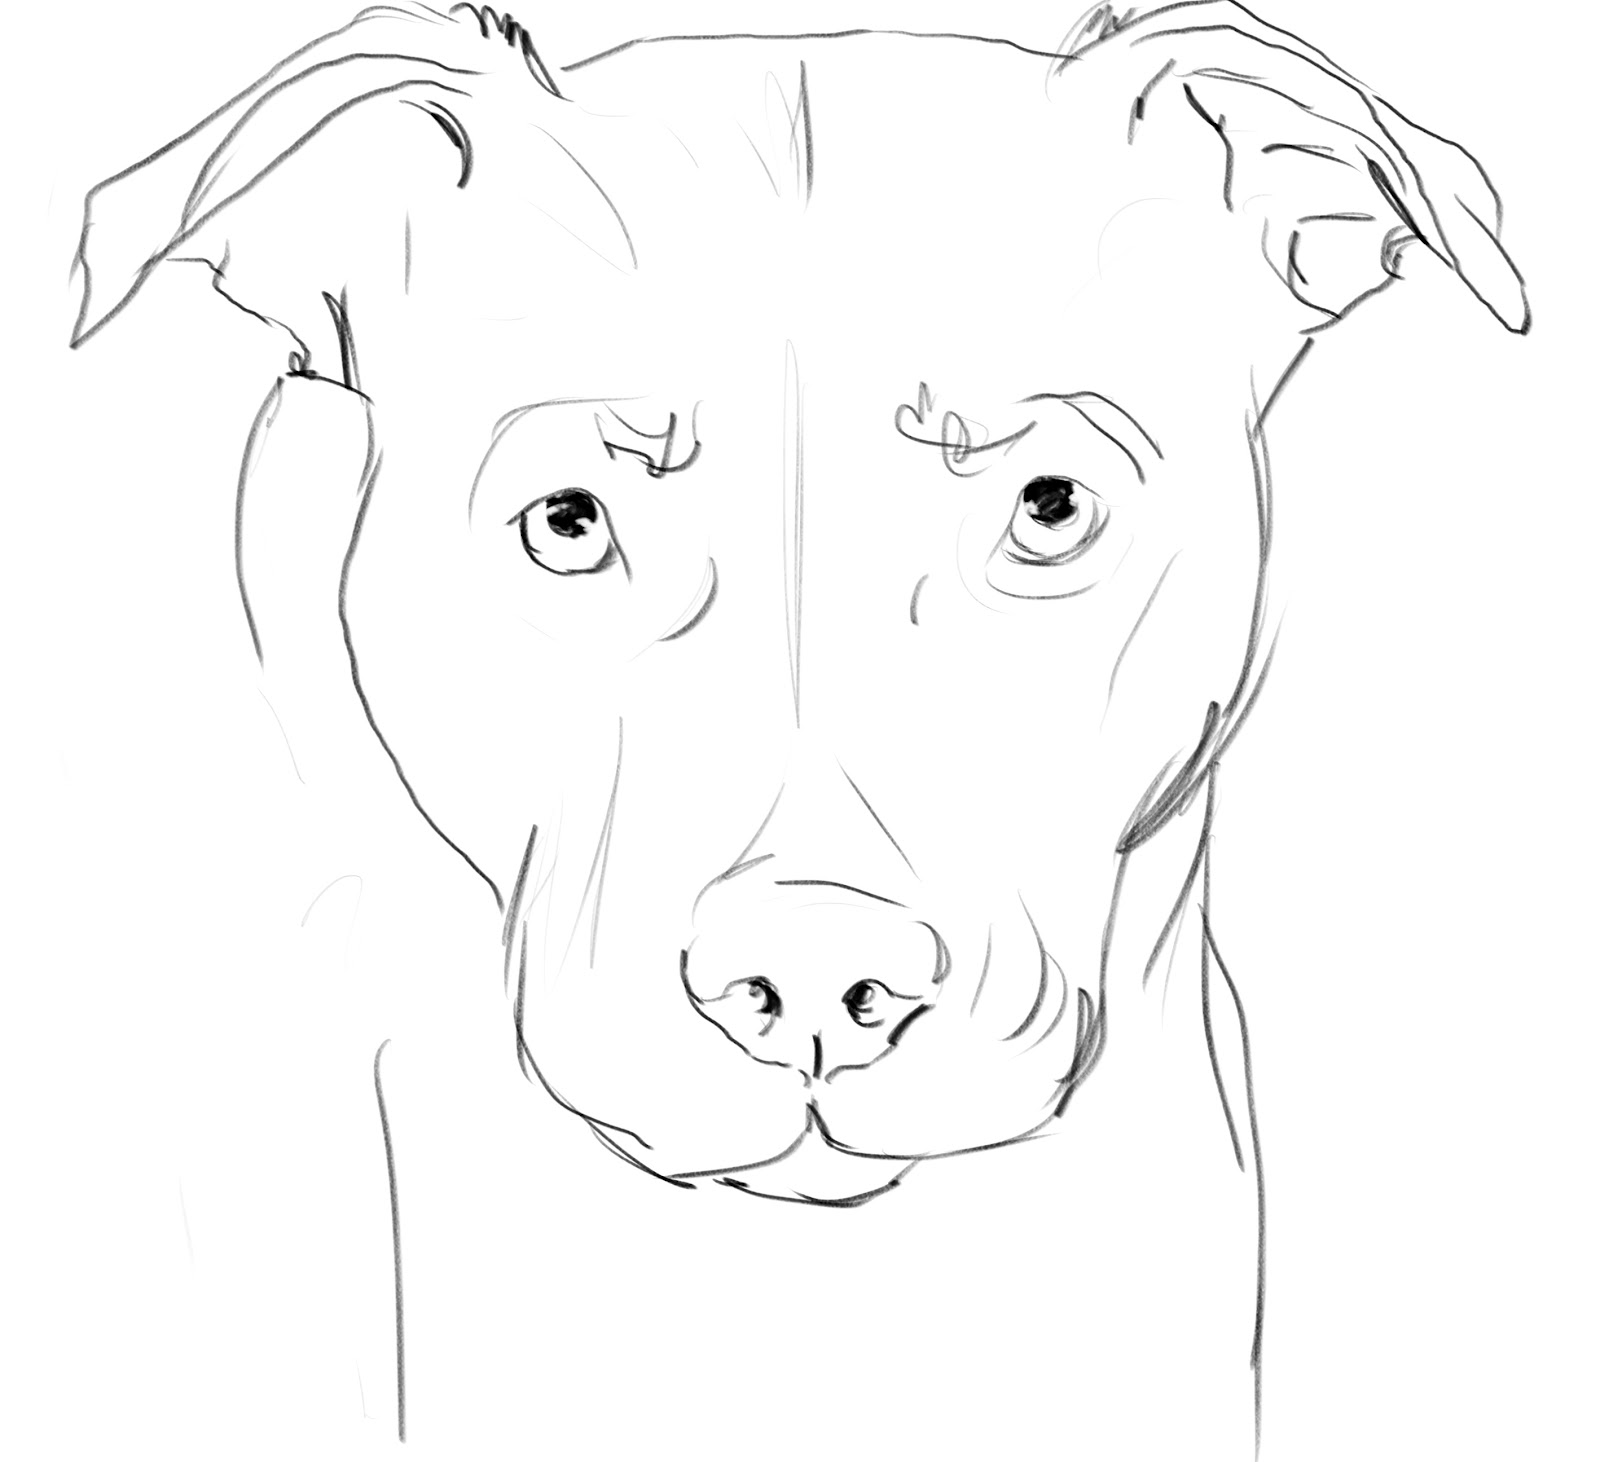 It's just a photo of Comprehensive Drawing Of Dogs Faces